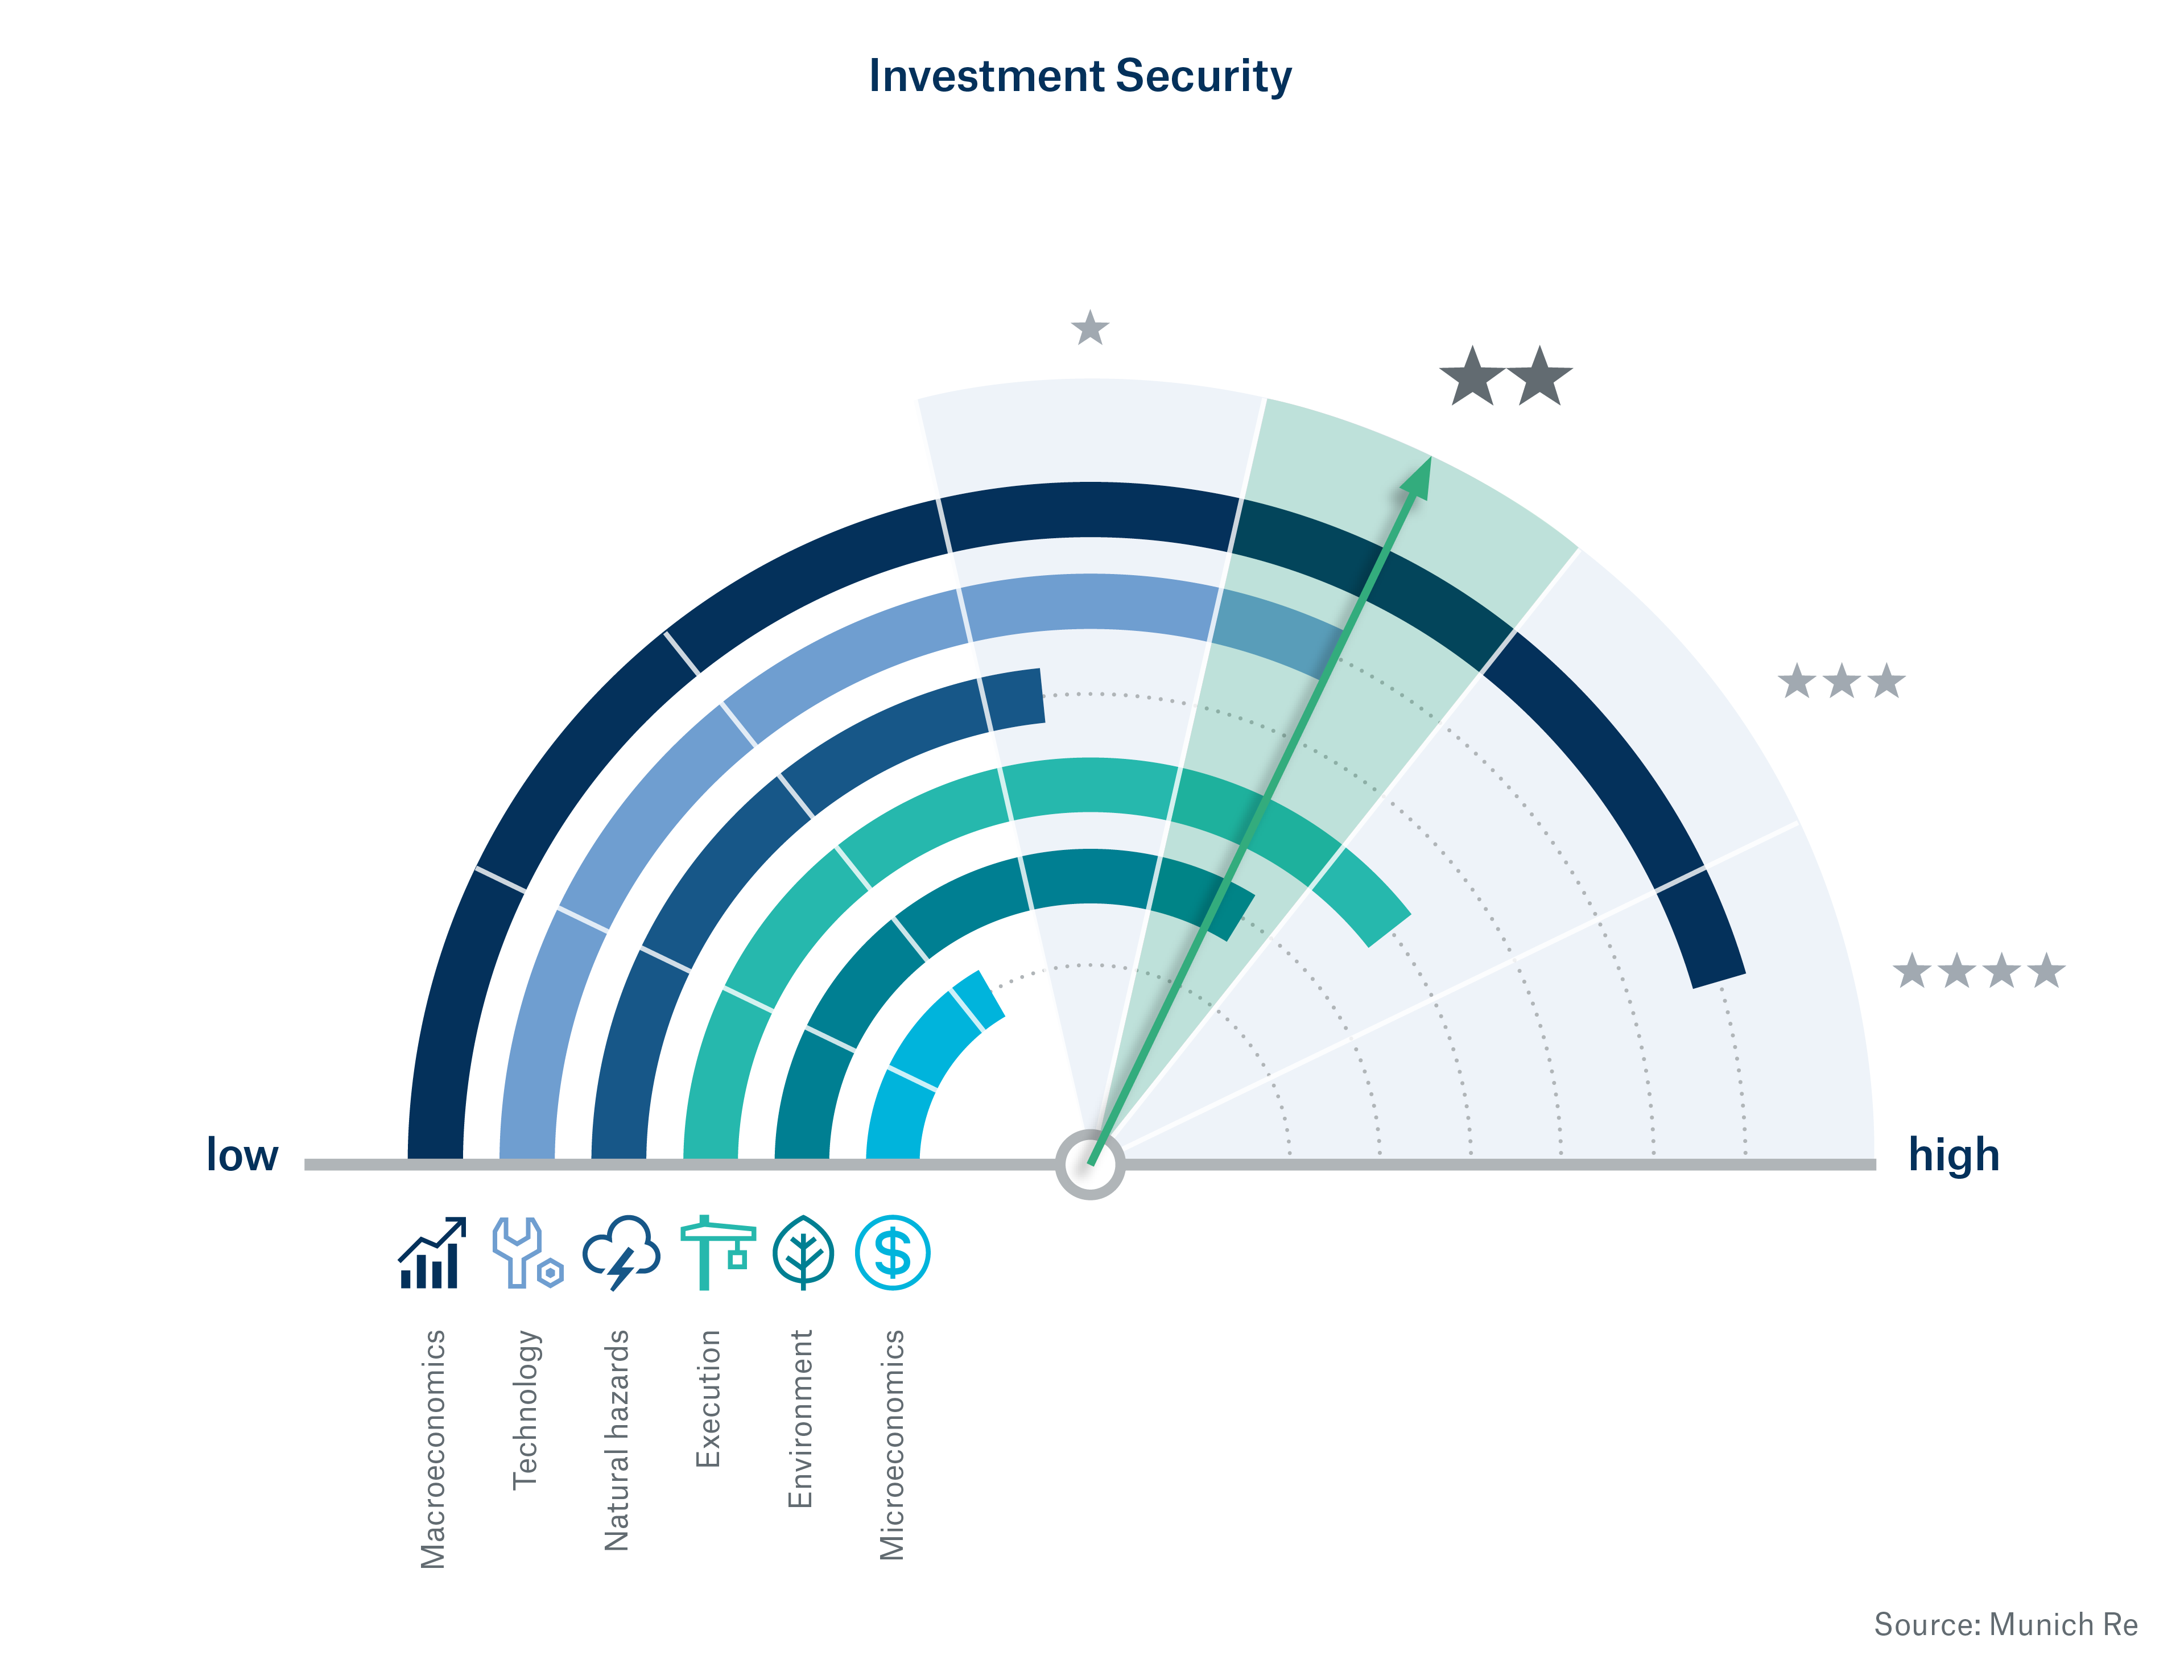 Risk profiles of infrastructure investments clearly revealed – Transparent risk profiles lead to diligent investments